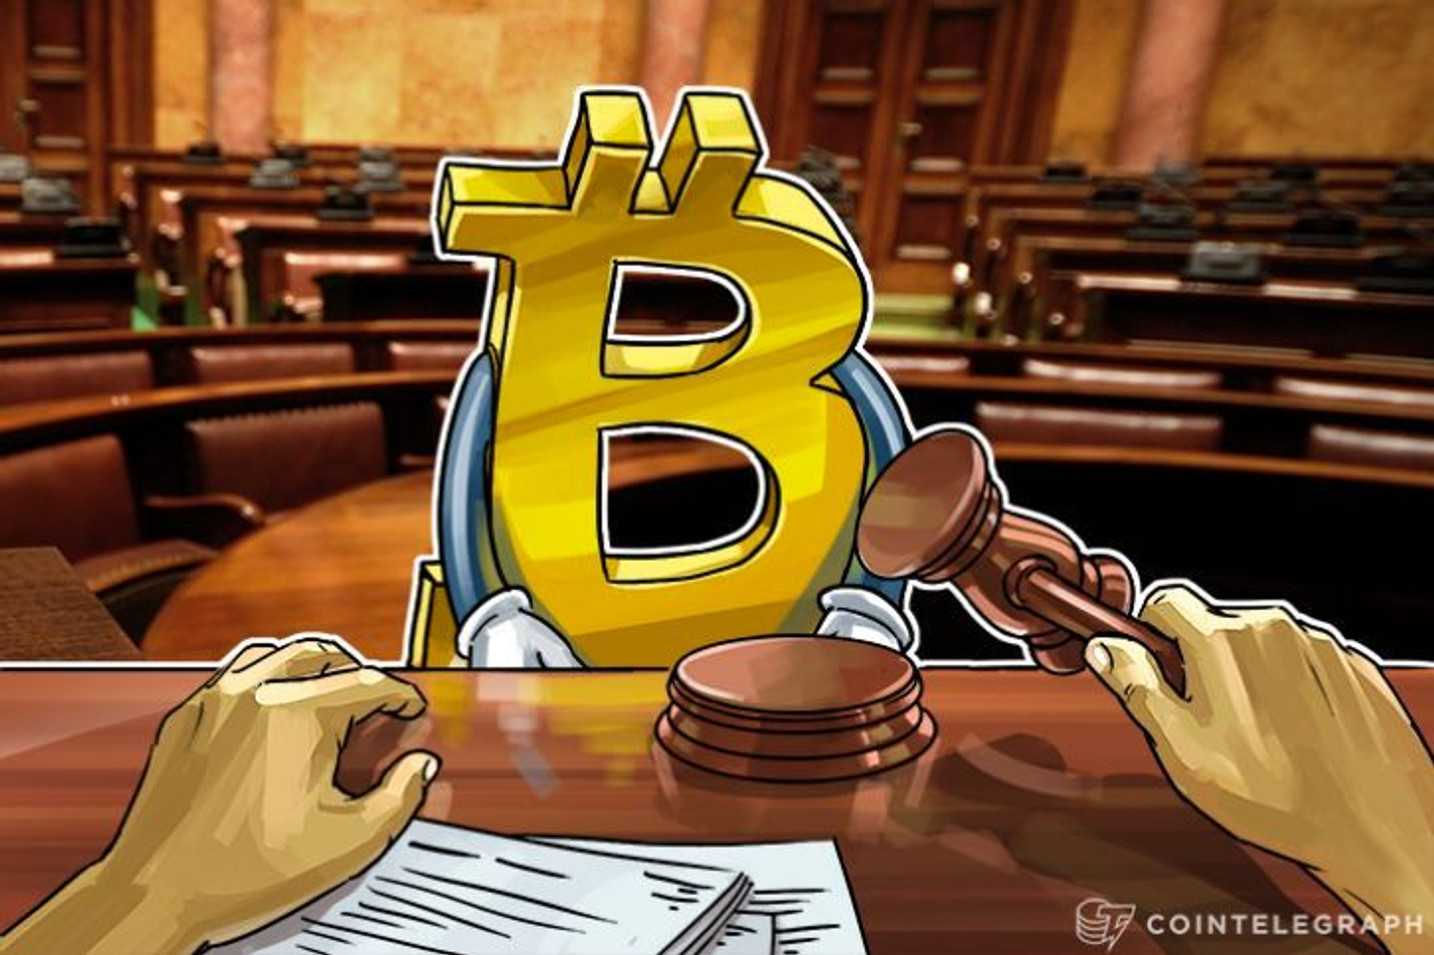 German Researchers: Child Abuse Content Found On Bitcoin Blockchain, Users Must Be Protected